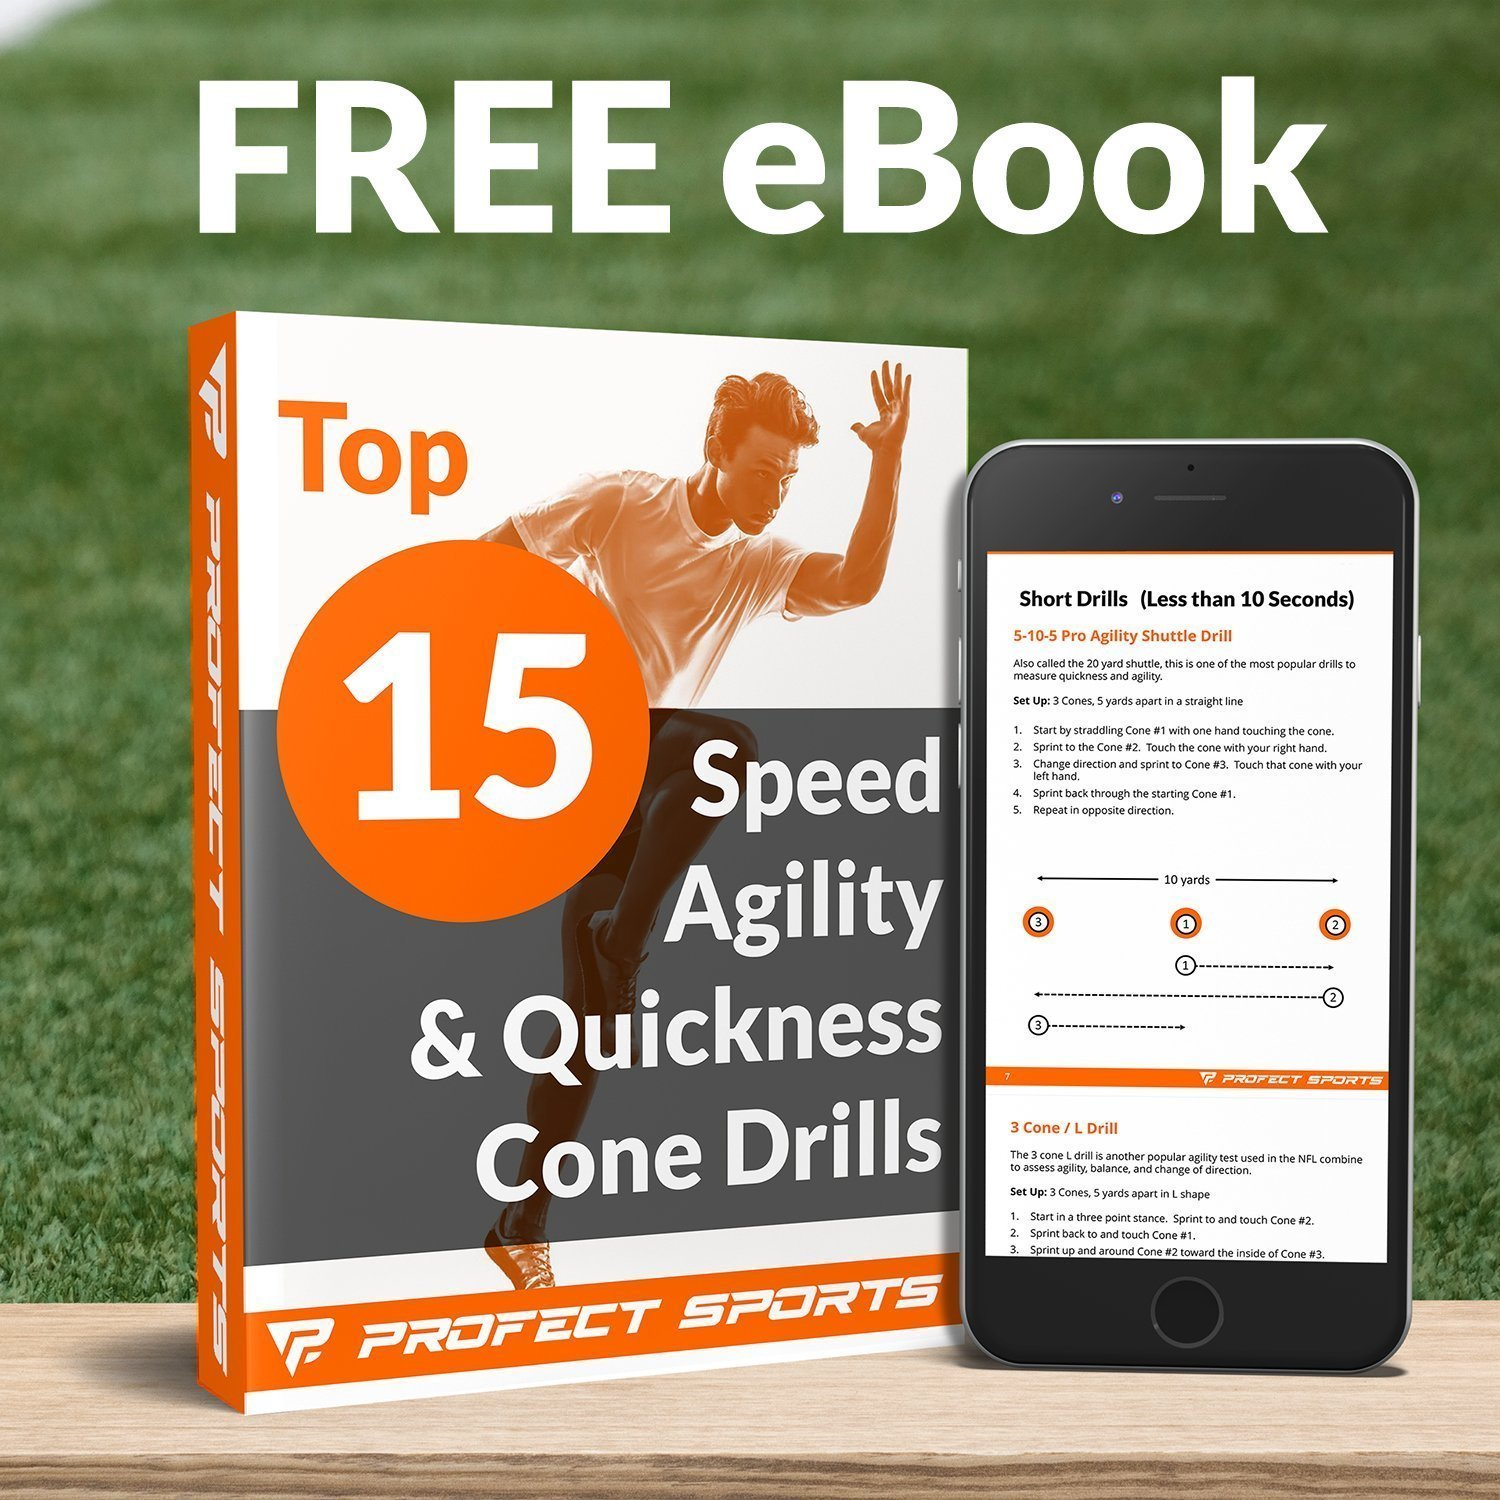 Pro Disc Cones (Set of 50) - Agility Soccer Cones with Carry Bag and Holder for Training, Football, Kids, Sports, Field Cone Markers - Includes Top 15 Drills eBook (Bright Orange) by Profect Sports (Image #5)